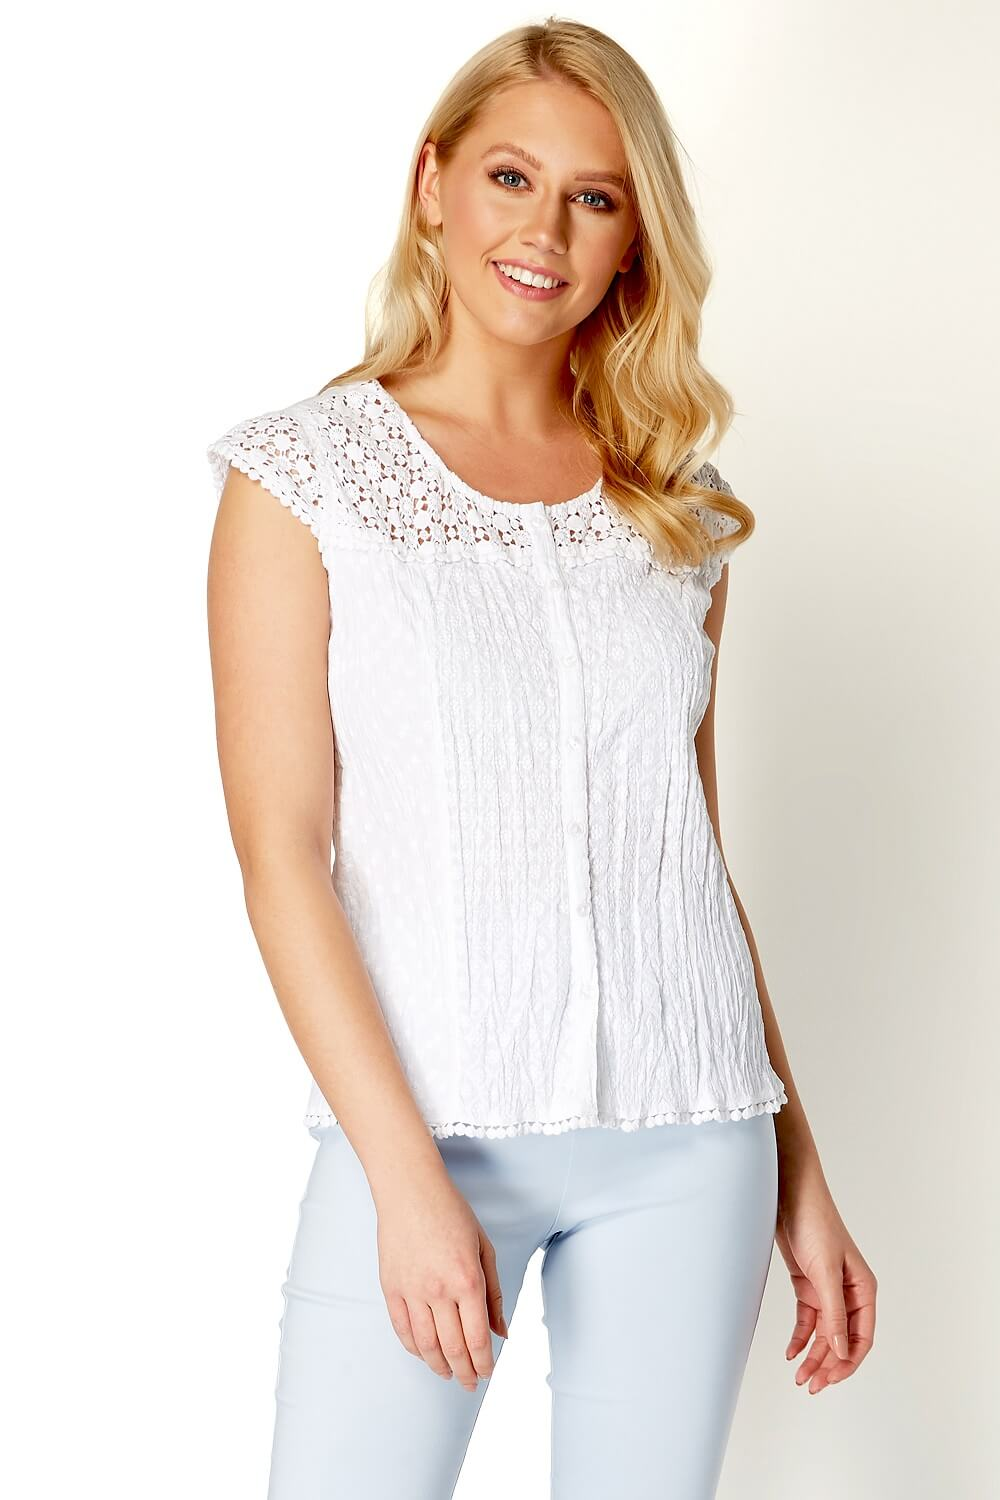 Lace-Yoke-Short-Sleeve-Button-Crinkle-Blouse-Ladies-Women-Roman-Originals thumbnail 14